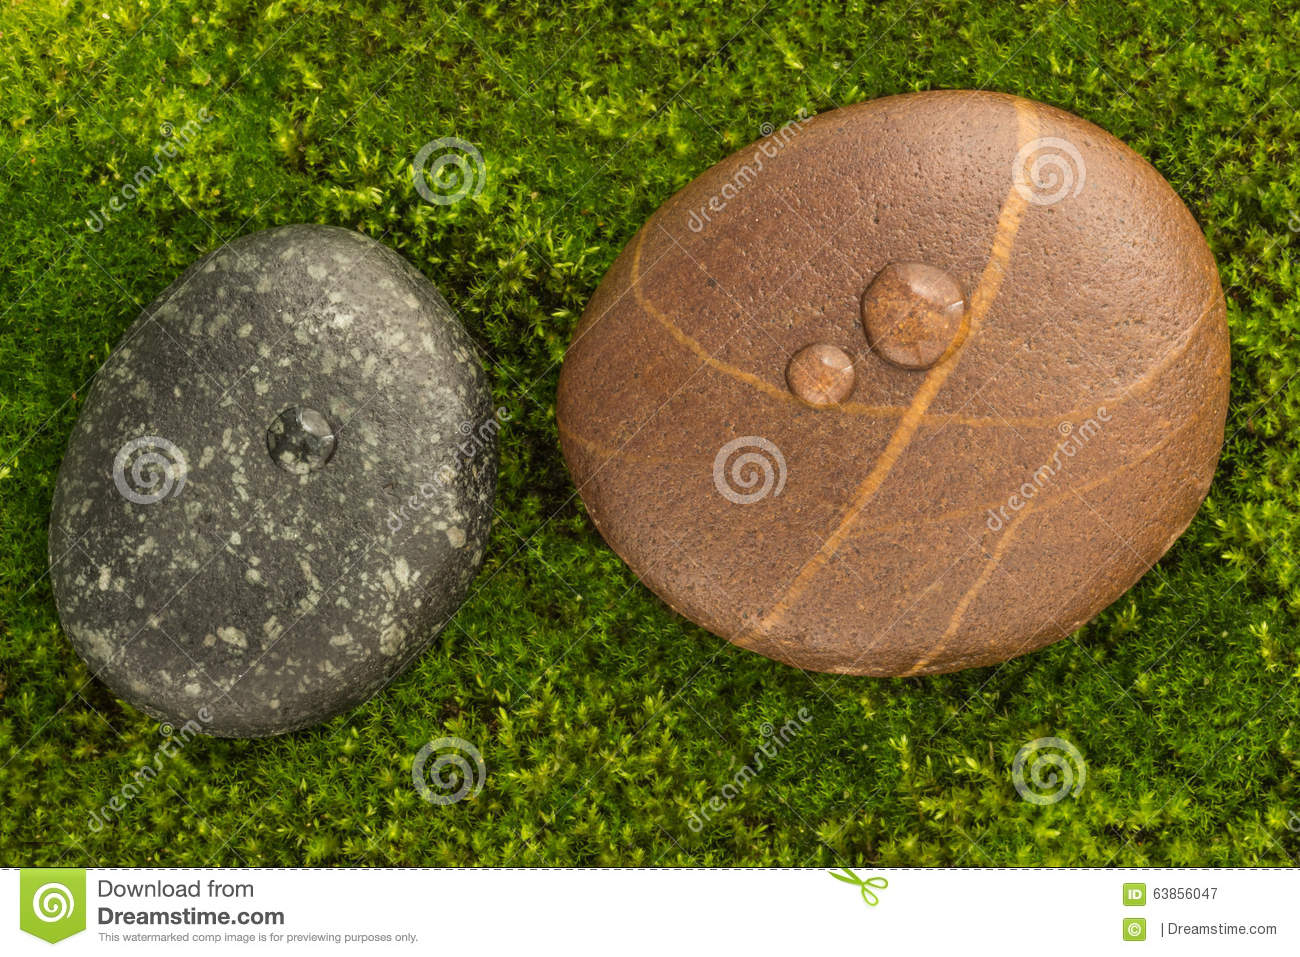 The River Stones spa treatment scene with raindrop on moss background zen like concepts.